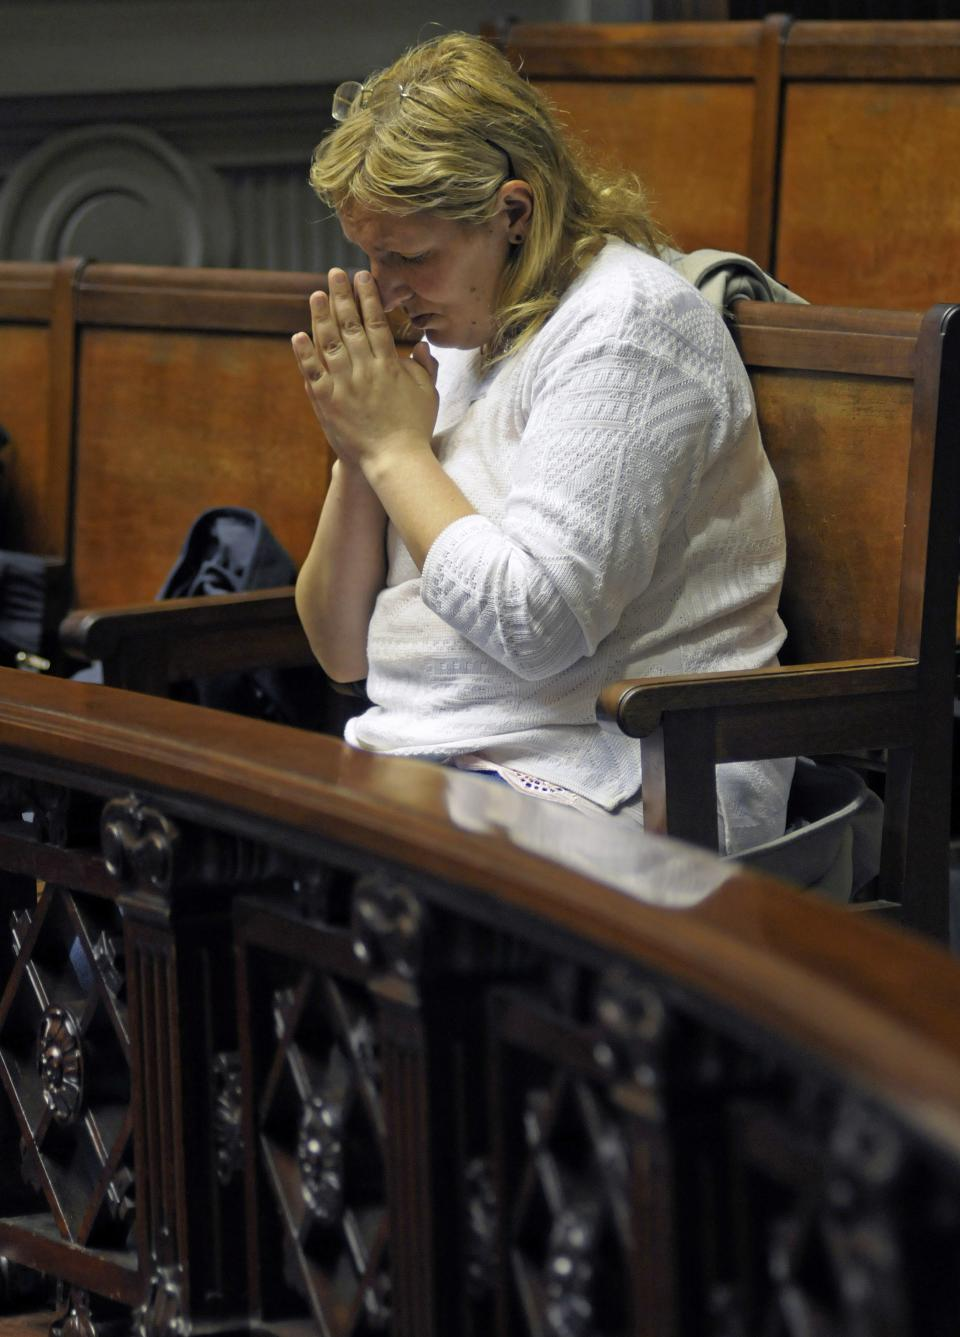 A pro-life activist prays in the senate gallery as lawmakers discuss an abortion bill in Montevideo, Uruguay, Wednesday, Oct. 17, 2012.  The Uruguayan Senate on Wednesday voted to legalize all first trimester abortions in a groundbreaking step in Latin America. (AP Photo/Matilde Campodonico)